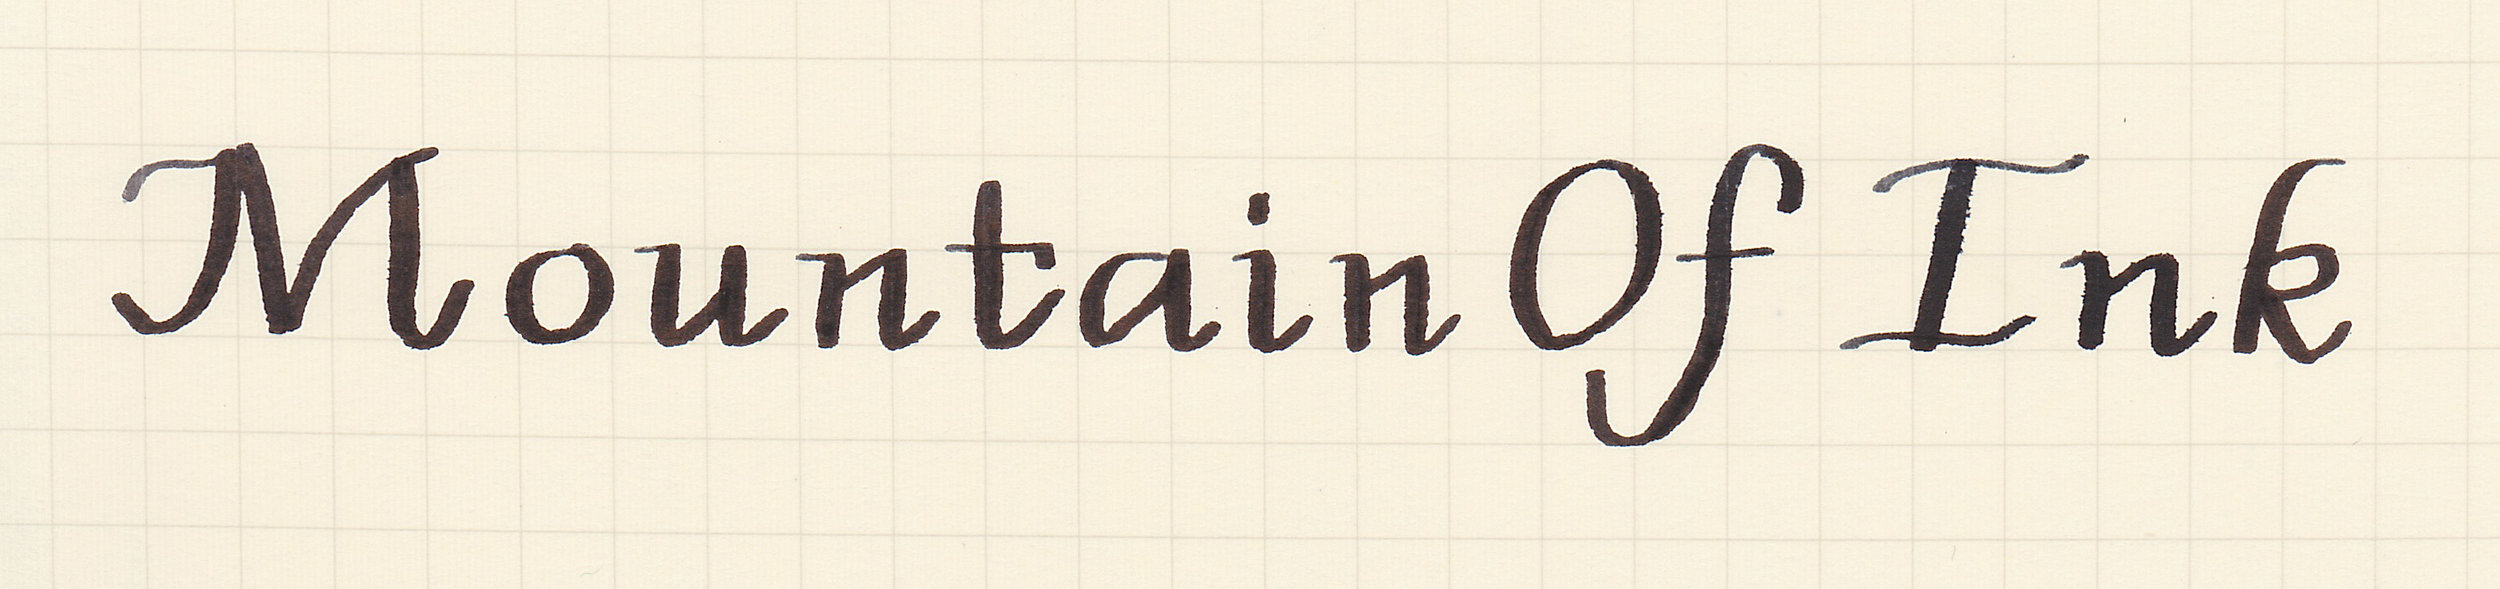 Italic Script, written with a 1.1 flex stub nib